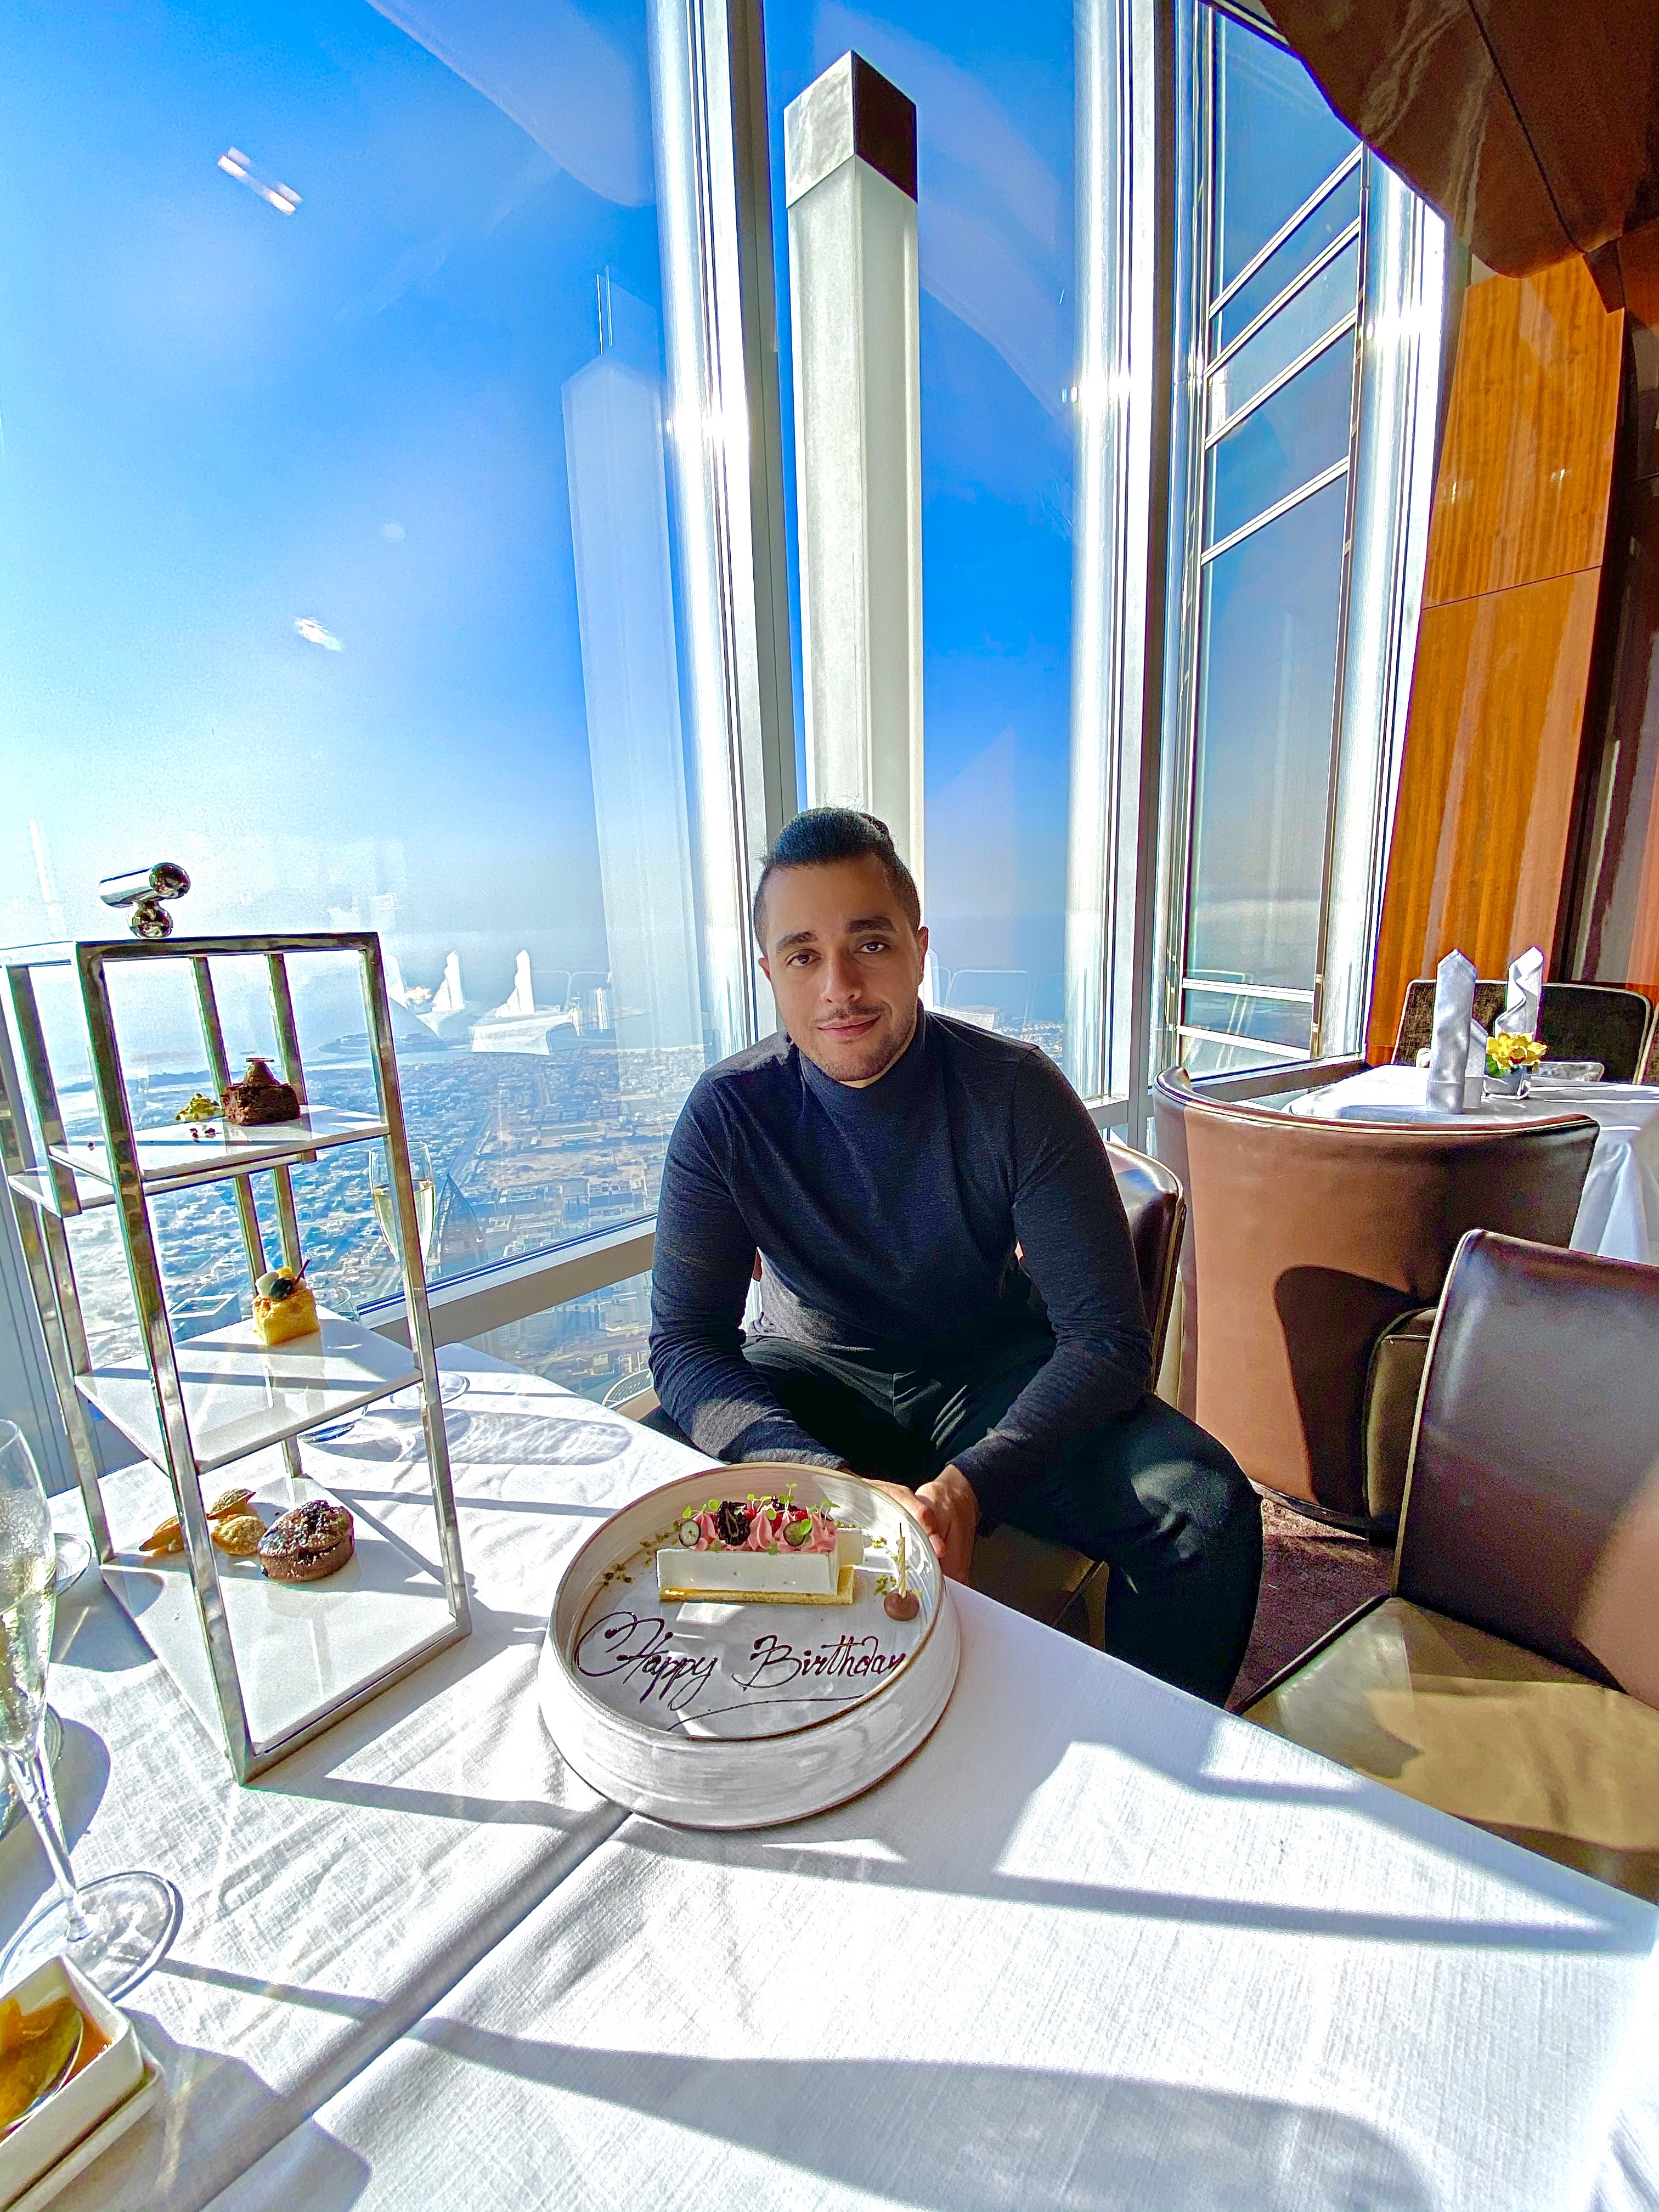 Kareem Zoro celebrated his birthday at the top of the world